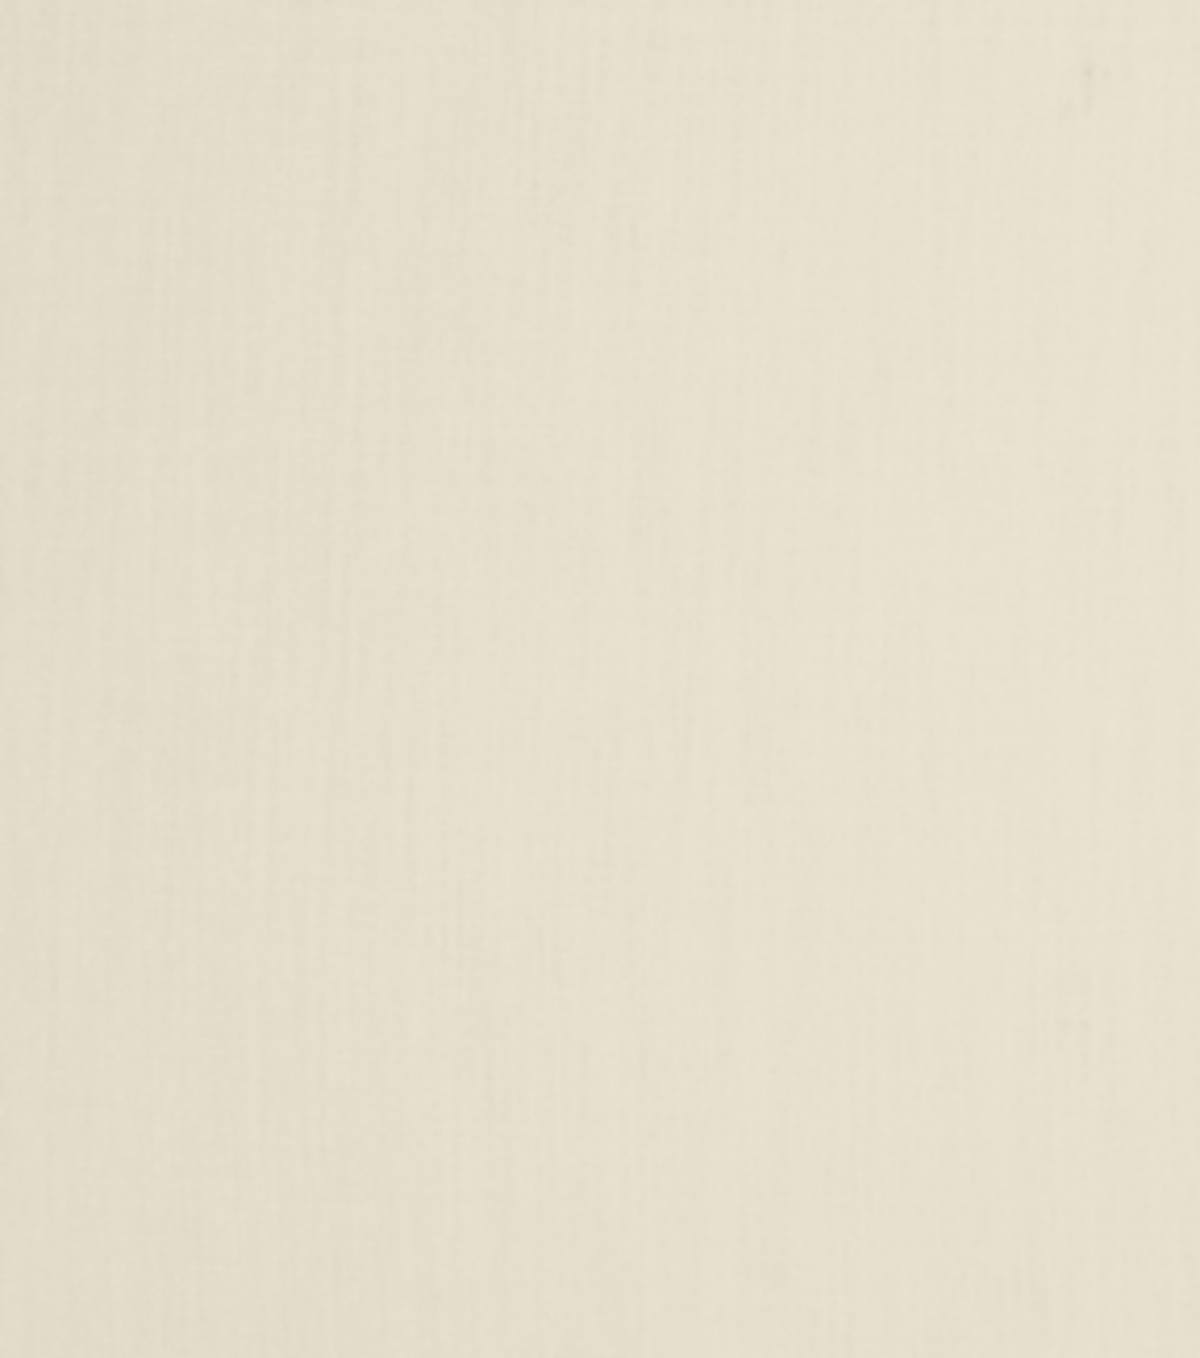 Home Decor 8\u0022x8\u0022 Fabric Swatch-Signature Series Media White